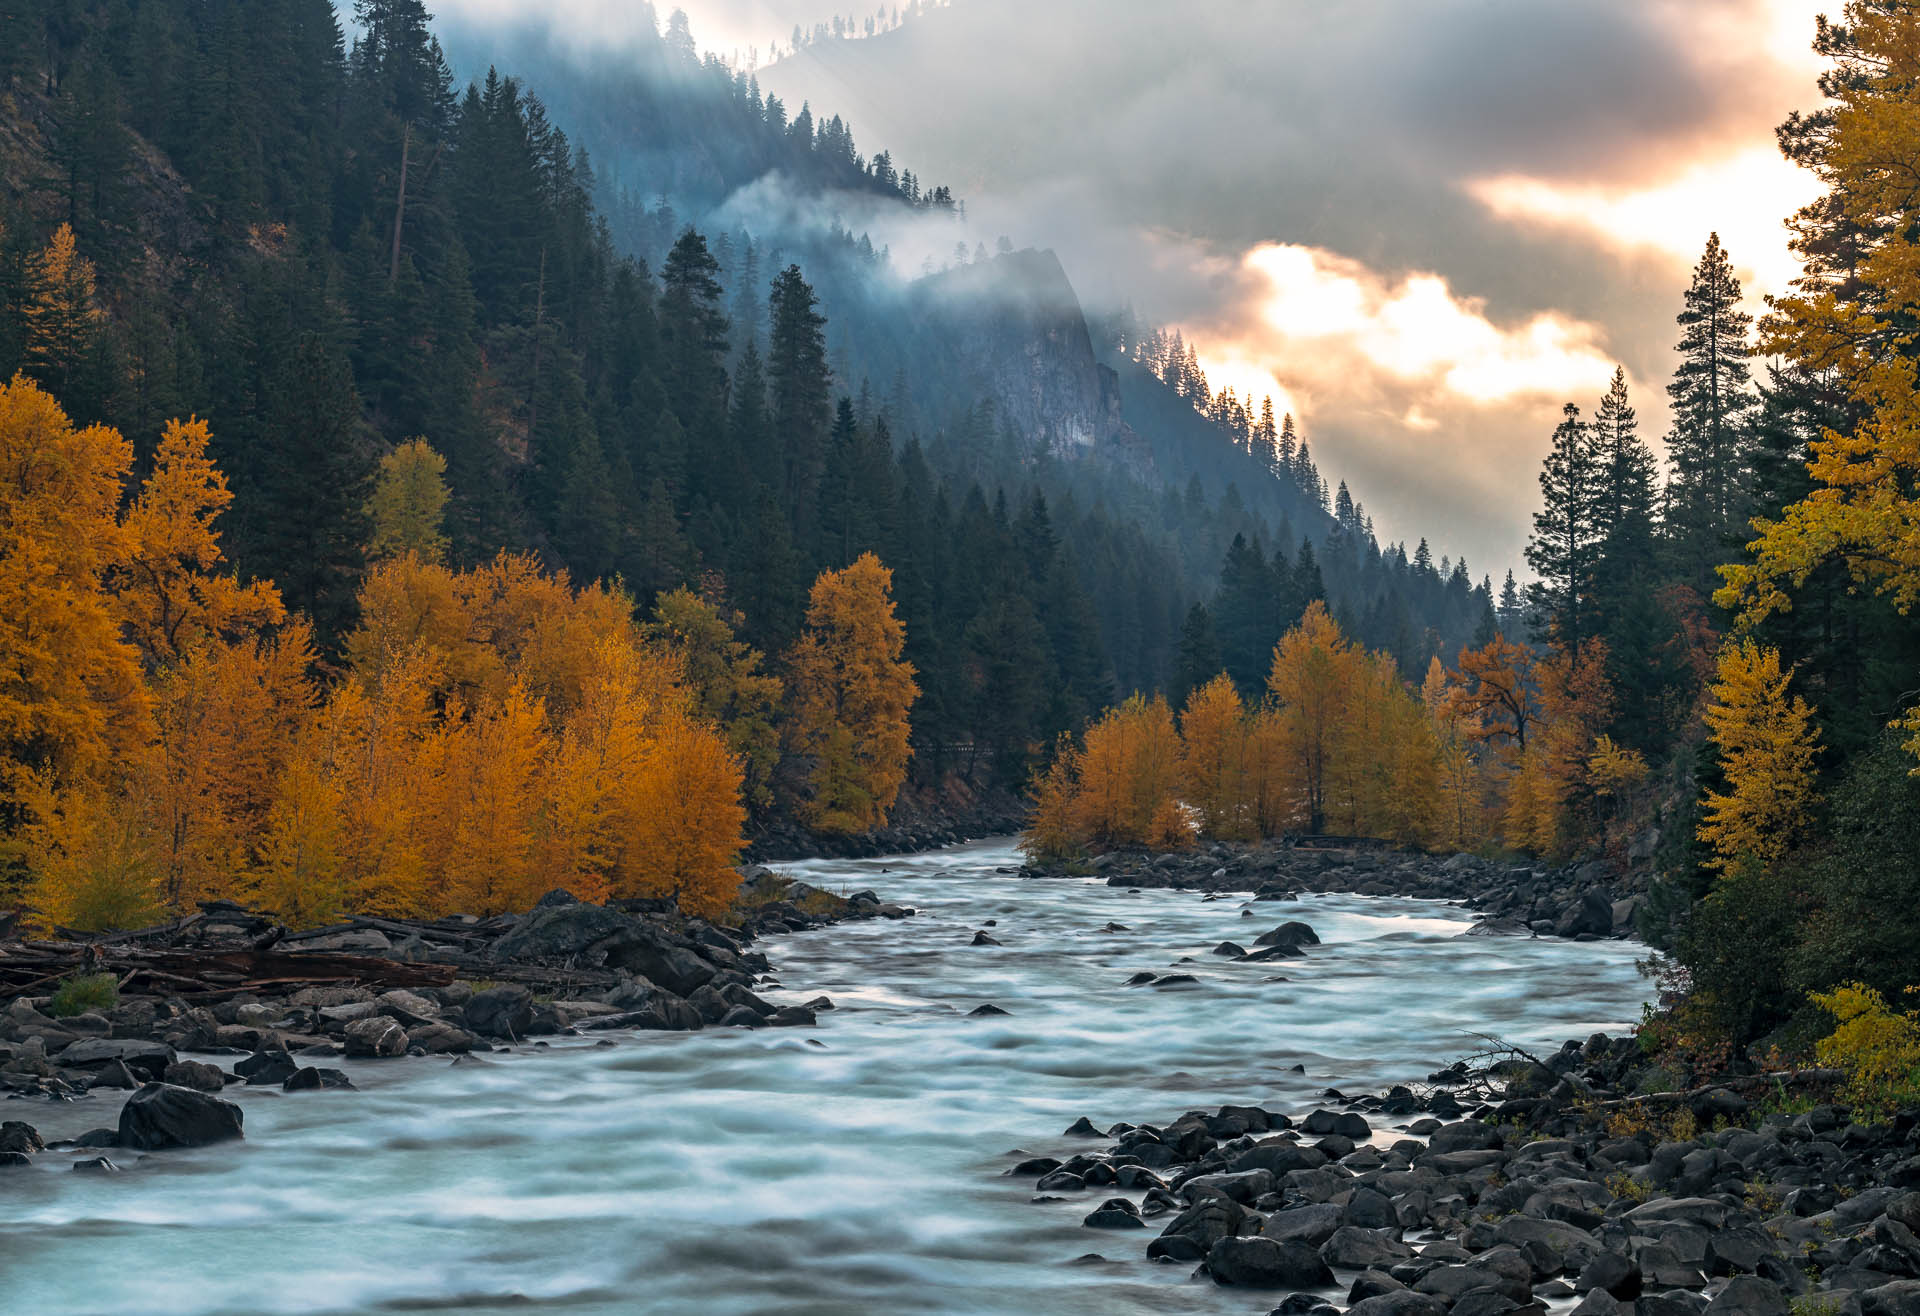 Tumwater Canyon Fall Colors, Washington